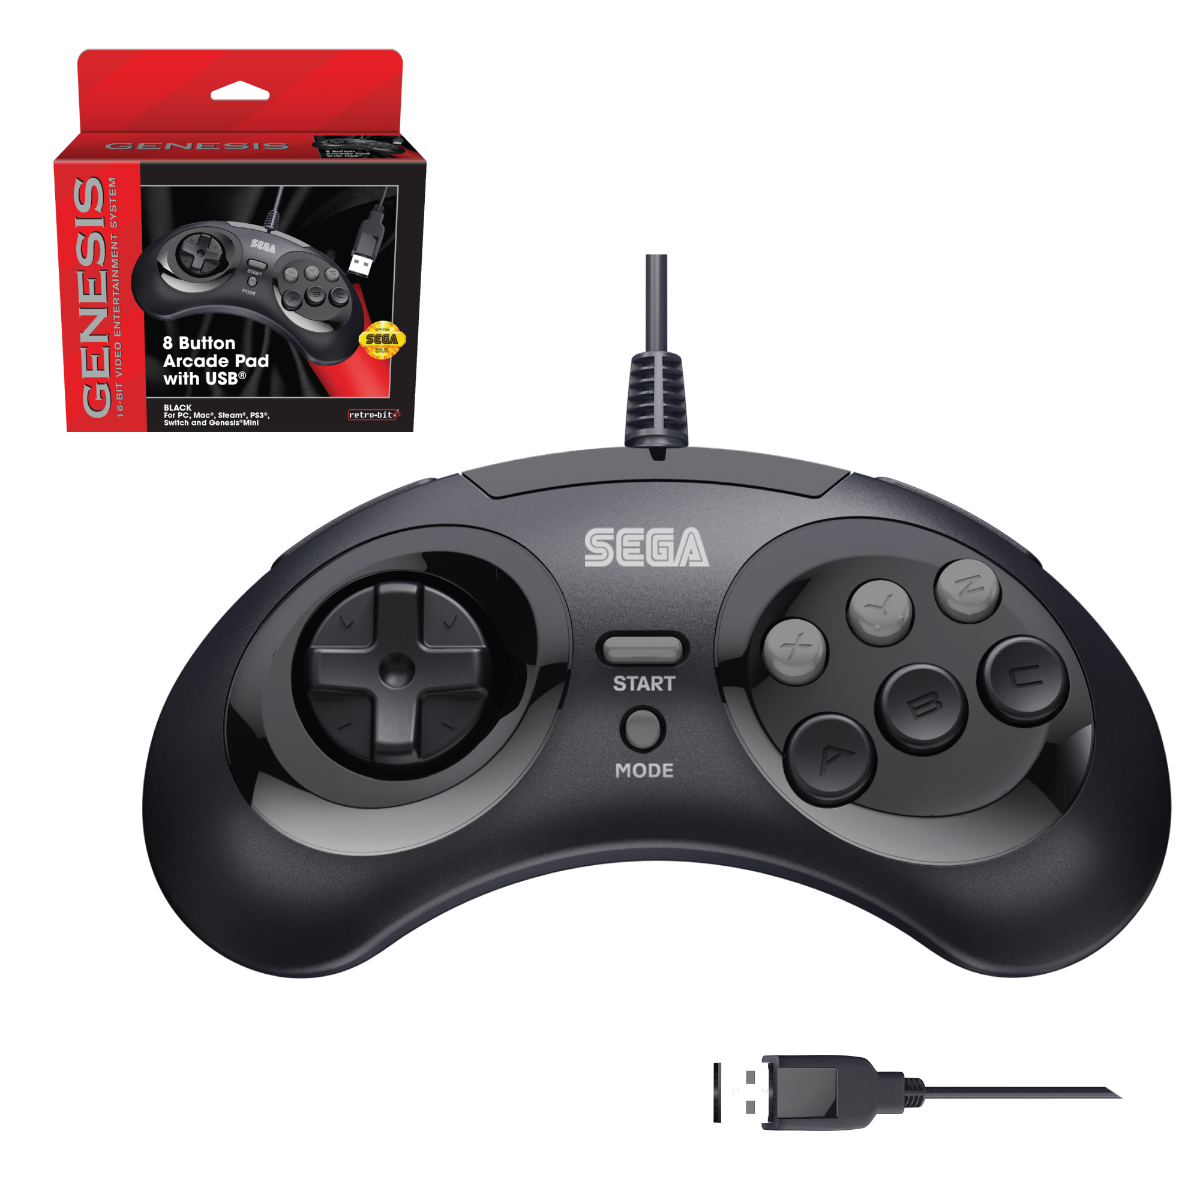 SEGA, Genesis, Arcade Pad, 8 Button, Black, USB